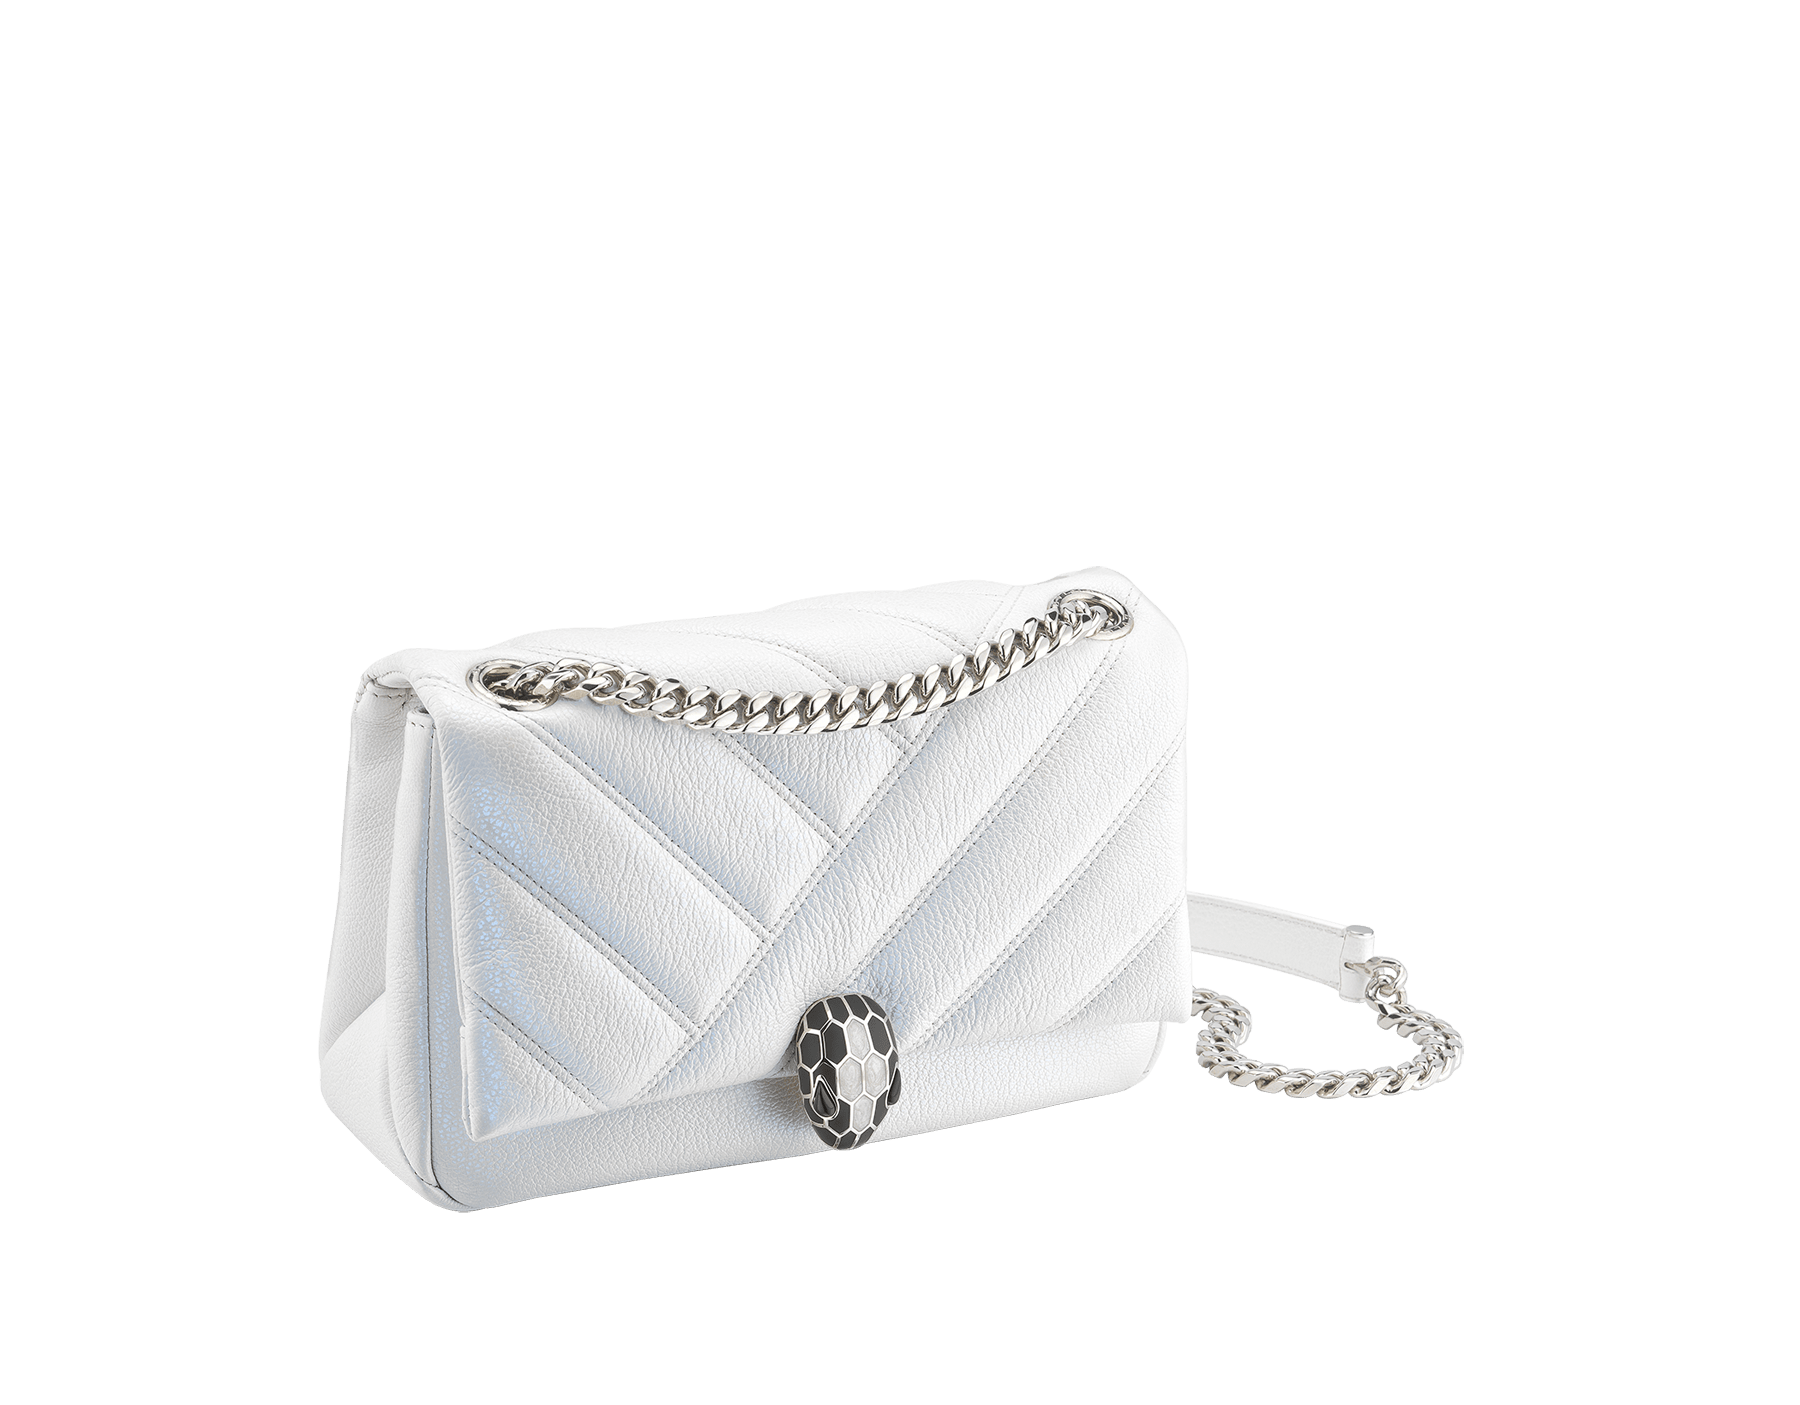 """Serpenti Cabochon"" shoulder bag in soft quilted white agate goatskin with a pearled, iridescent effect and a graphic motif. Brass palladium plated tempting snake head closure in matte black and shiny white enamel and black onyx eyes. 290236 image 2"